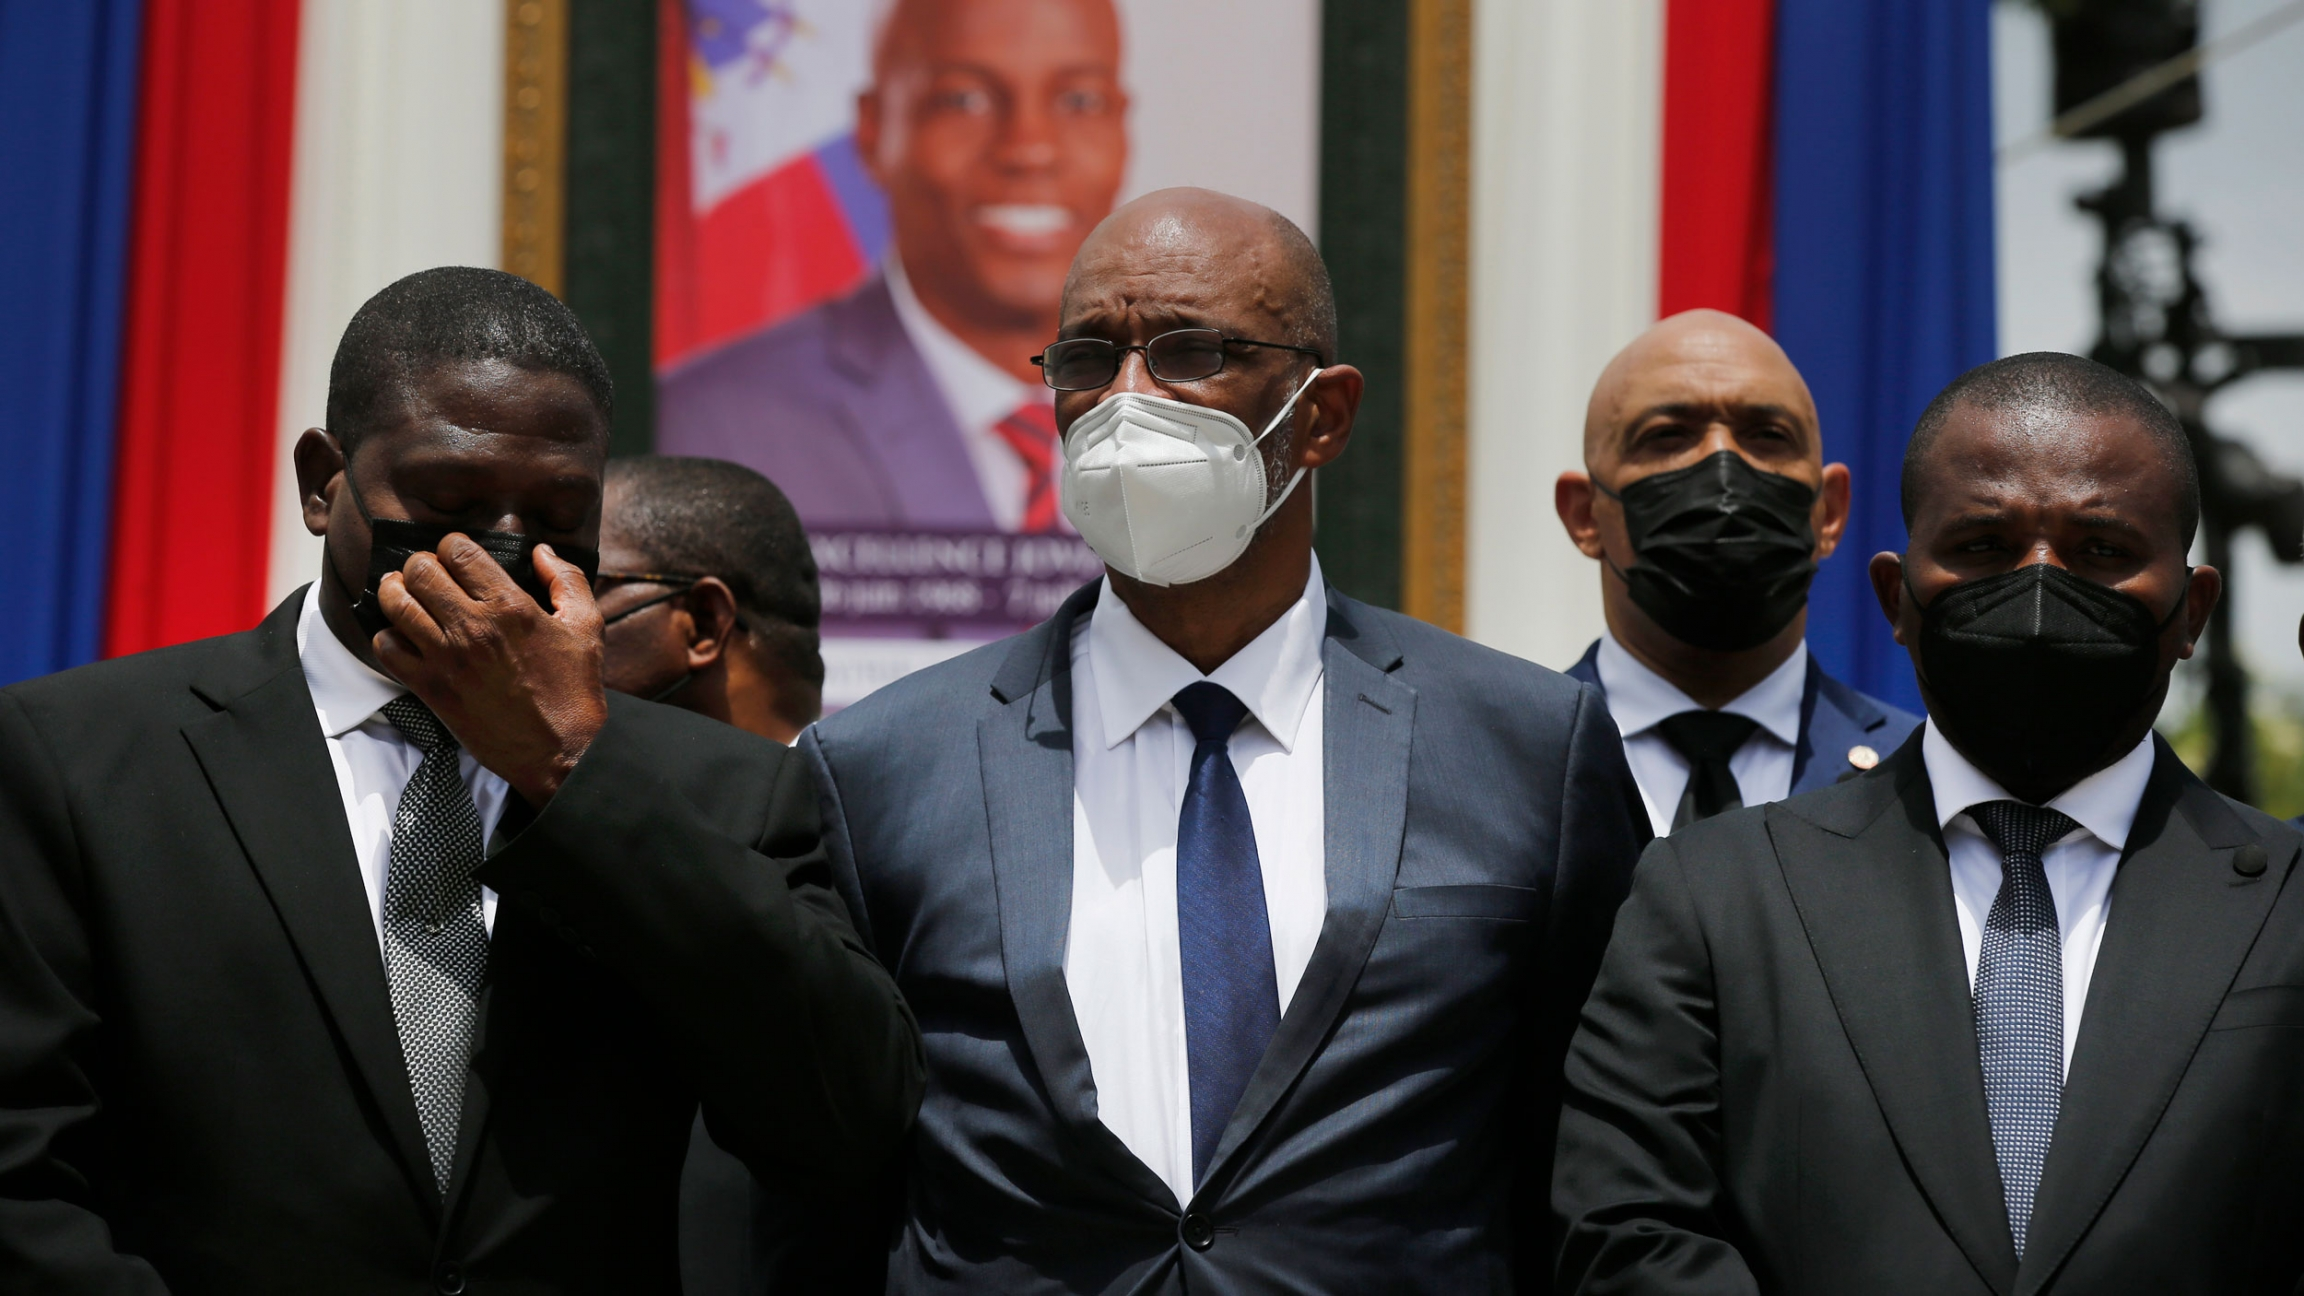 Haiti's designated Prime Minister Ariel Henry, center, and interim Prime Minister Claude Joseph, right, pose for a group photo with other authorities in front of a portrait of late Haitian President Jovenel Moïse at at the National Pantheon Museum during